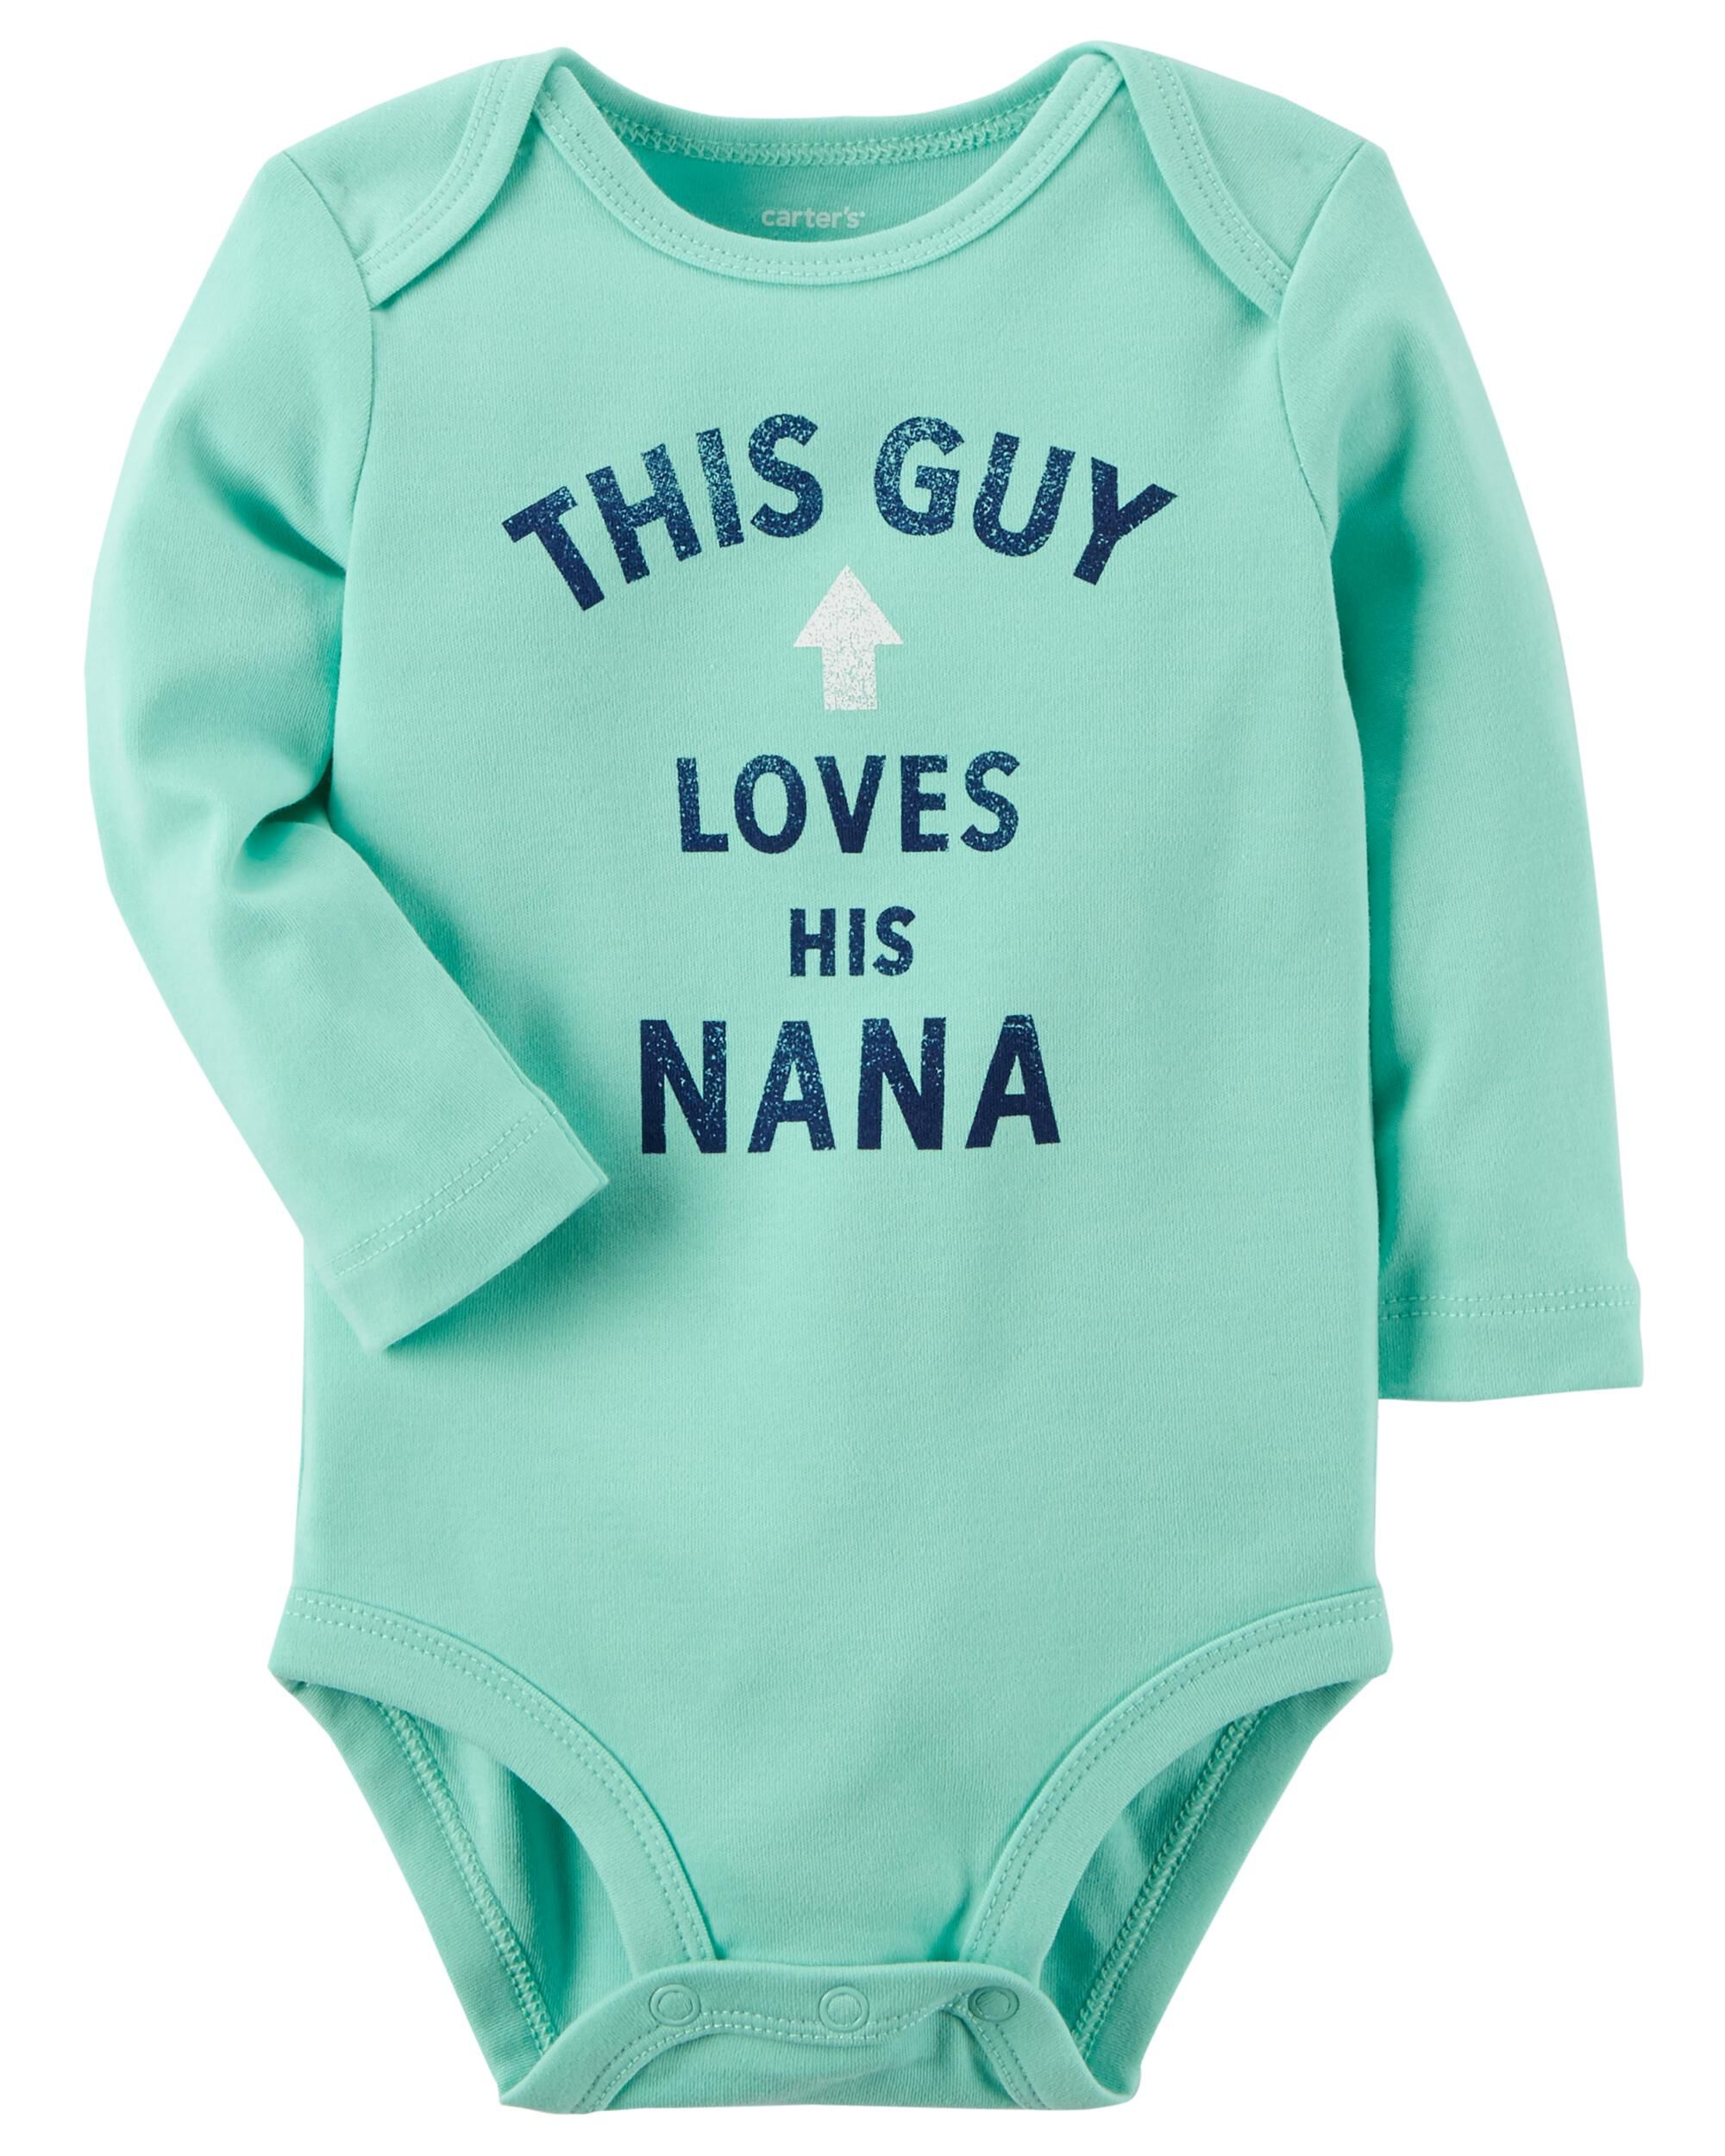 This Guy Loves Nana Collectible Bodysuit